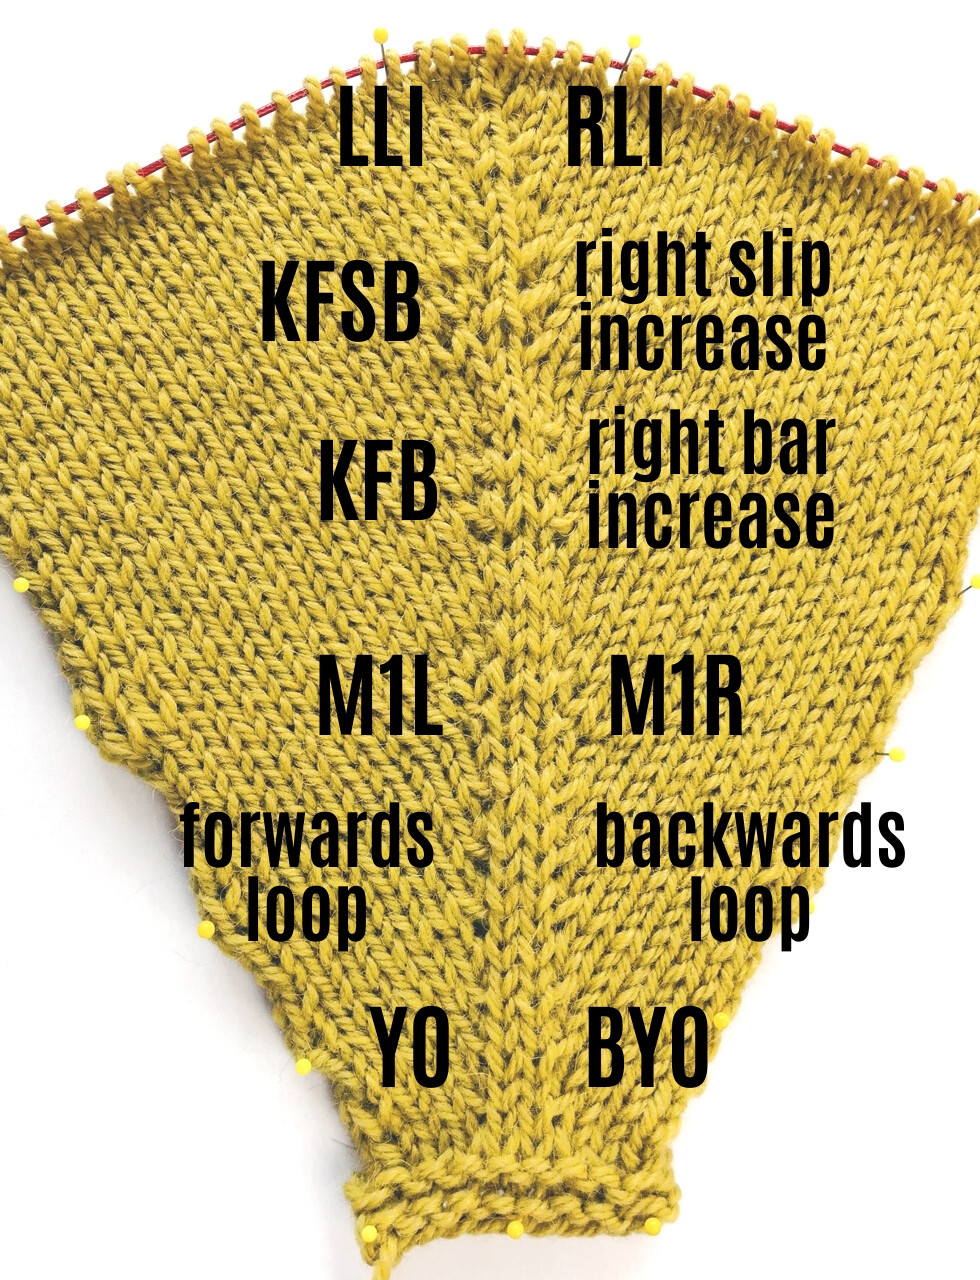 6 Ways to Knit Mirrored Increases